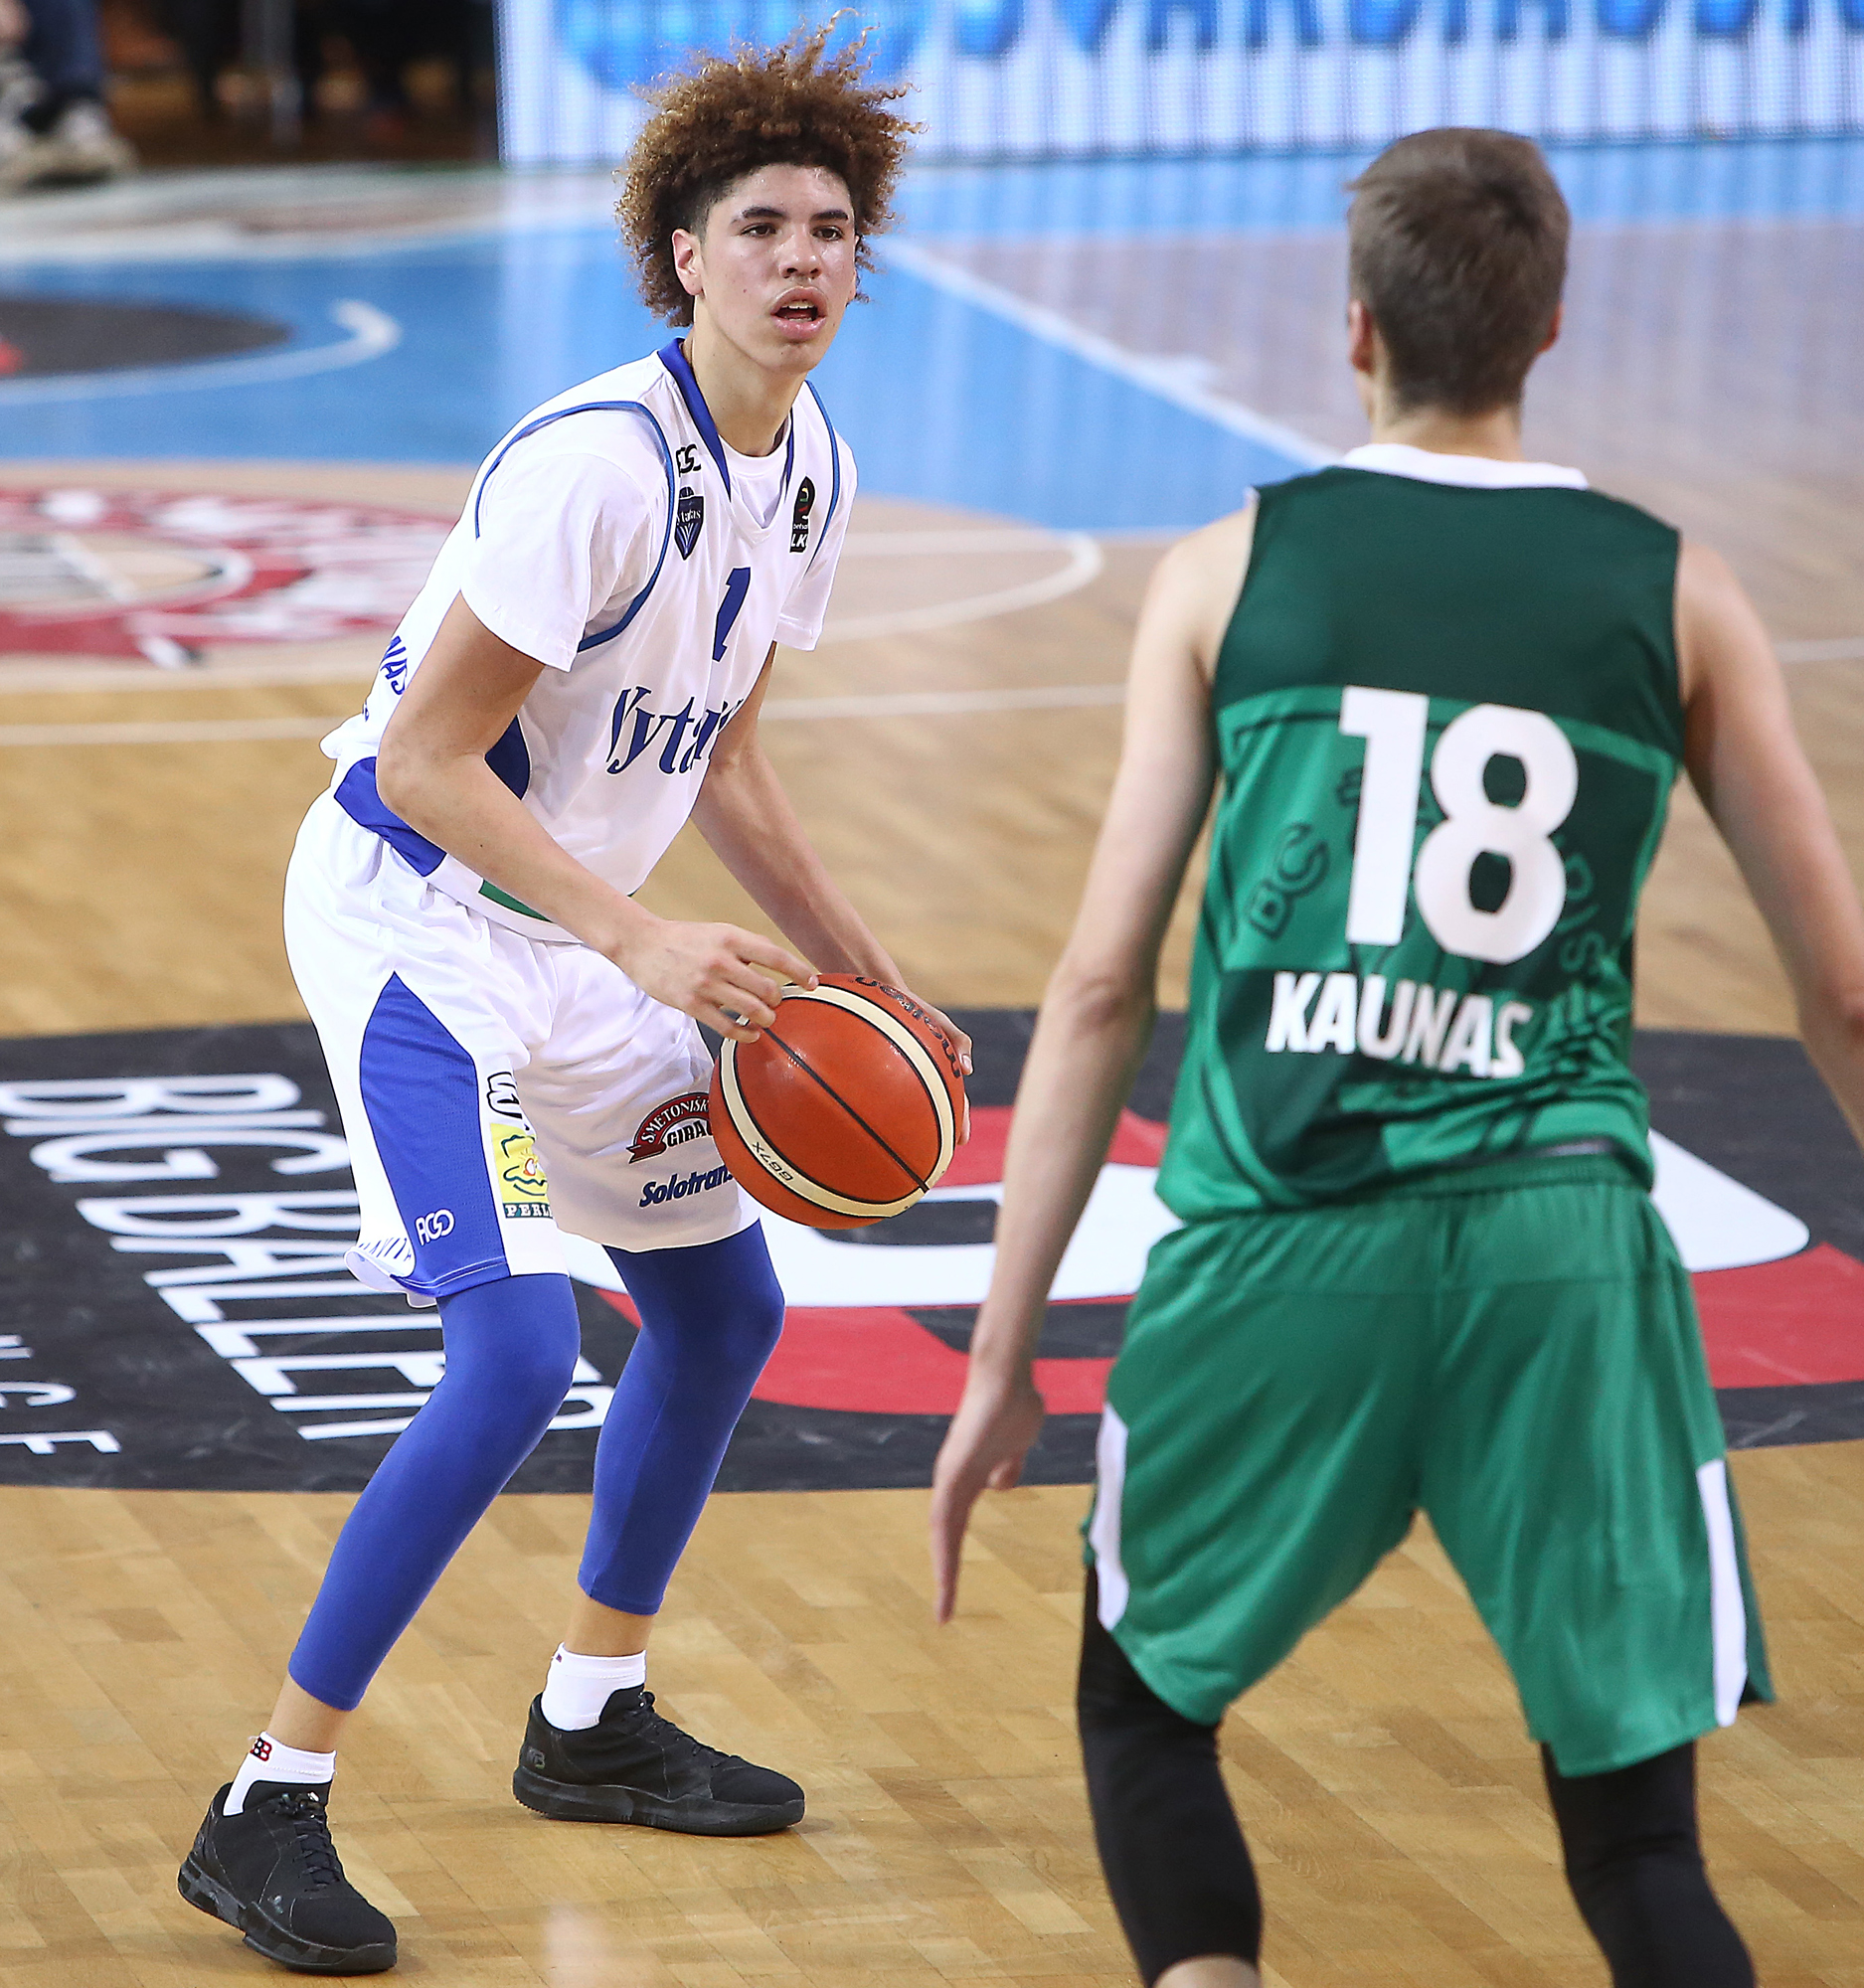 LaMelo Ball of Vytautas Prienai in action during the match between Vytautas  Prienai and Zalgiris Kauno. 415709073